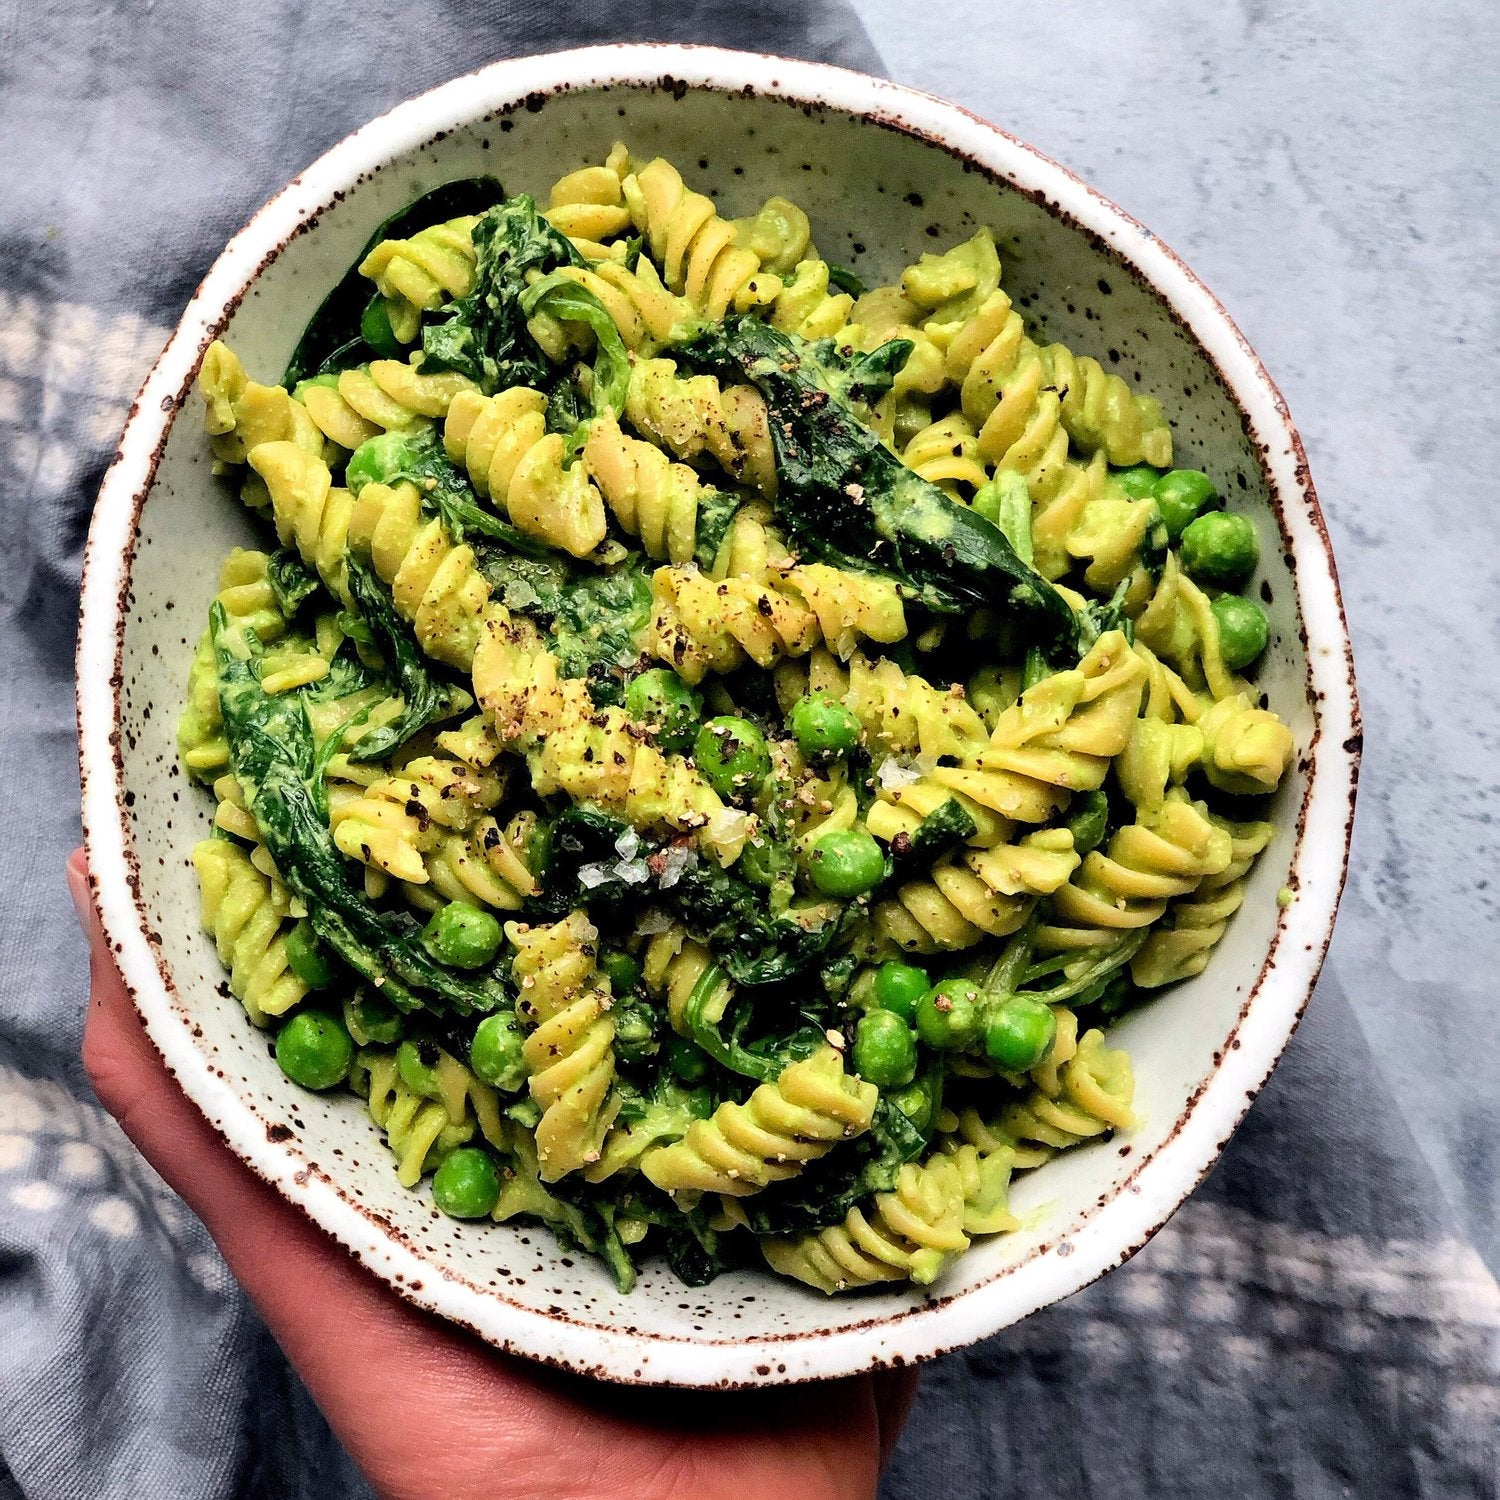 Creamy Vegan Pesto